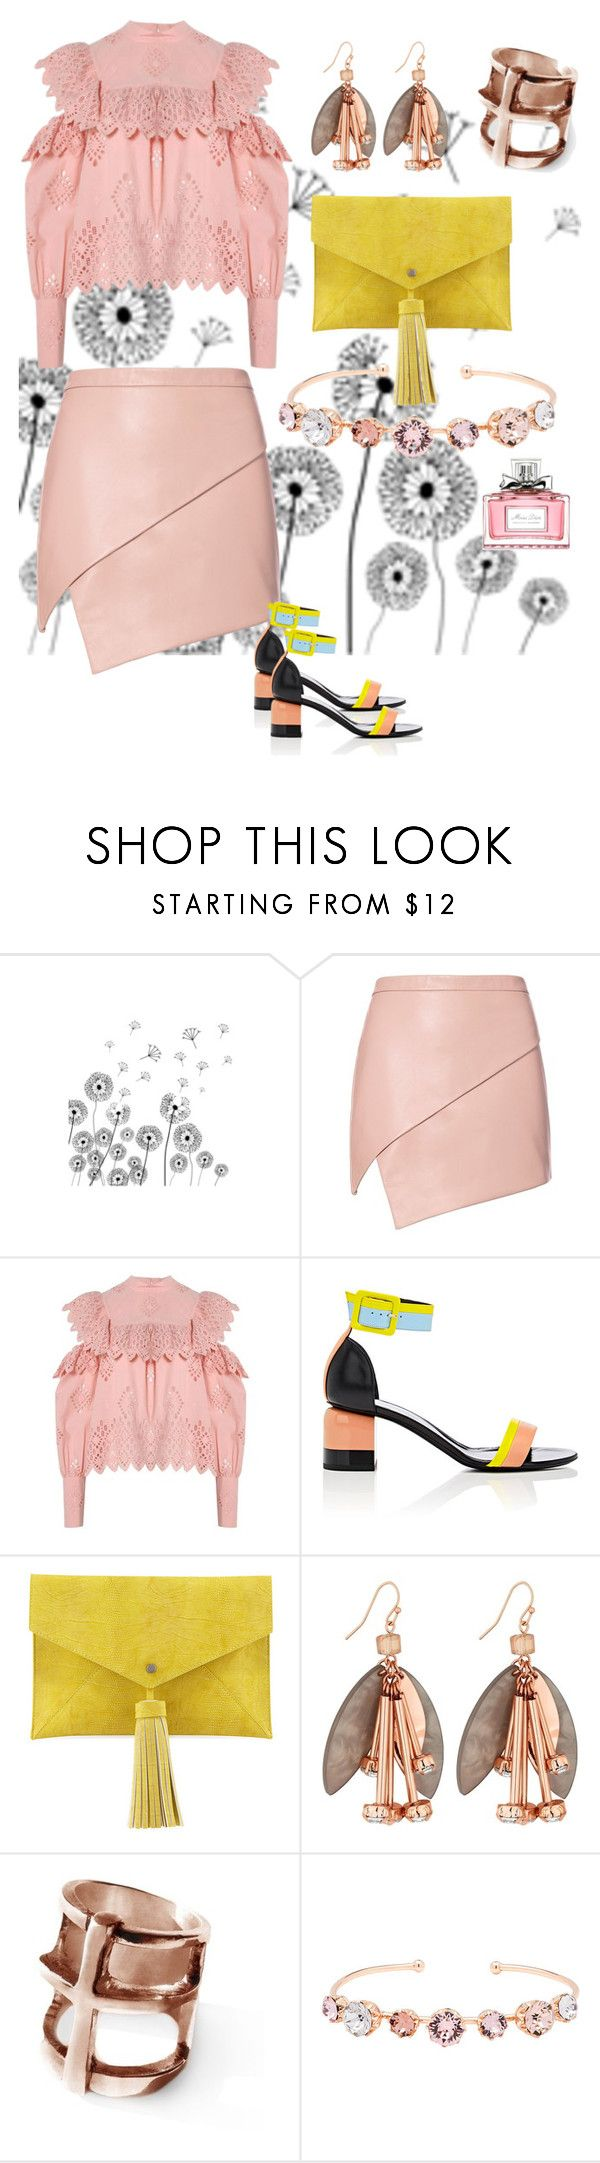 """Pink and yellow"" by soulchicjourneyatelier ❤ liked on Polyvore featuring Michelle Mason, Sea, New York, Pierre Hardy, Neiman Marcus, Pamela Love, Ted Baker and Christian Dior"